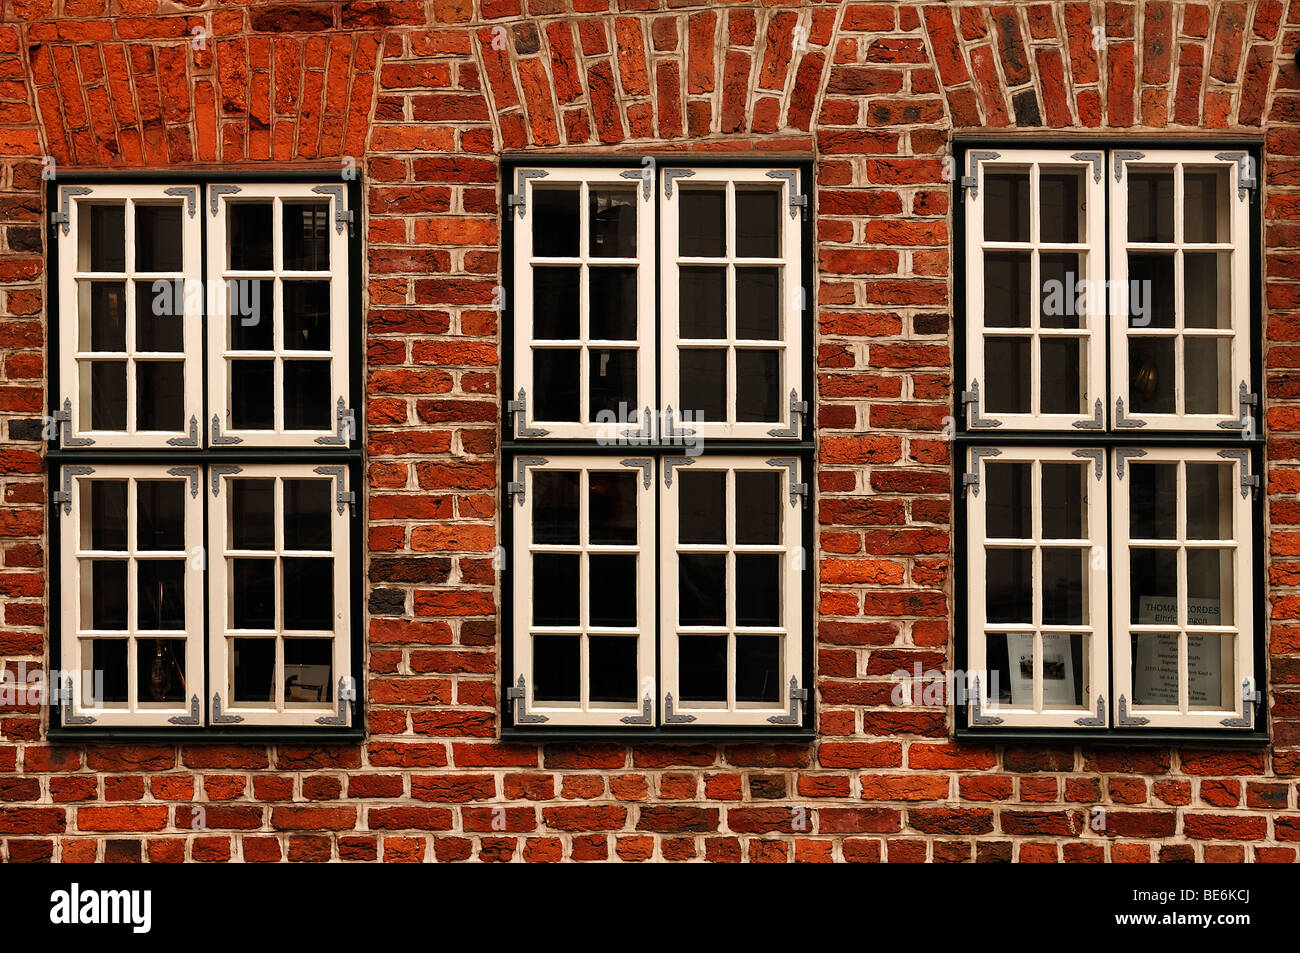 old lattice windows stock photos old lattice windows stock images